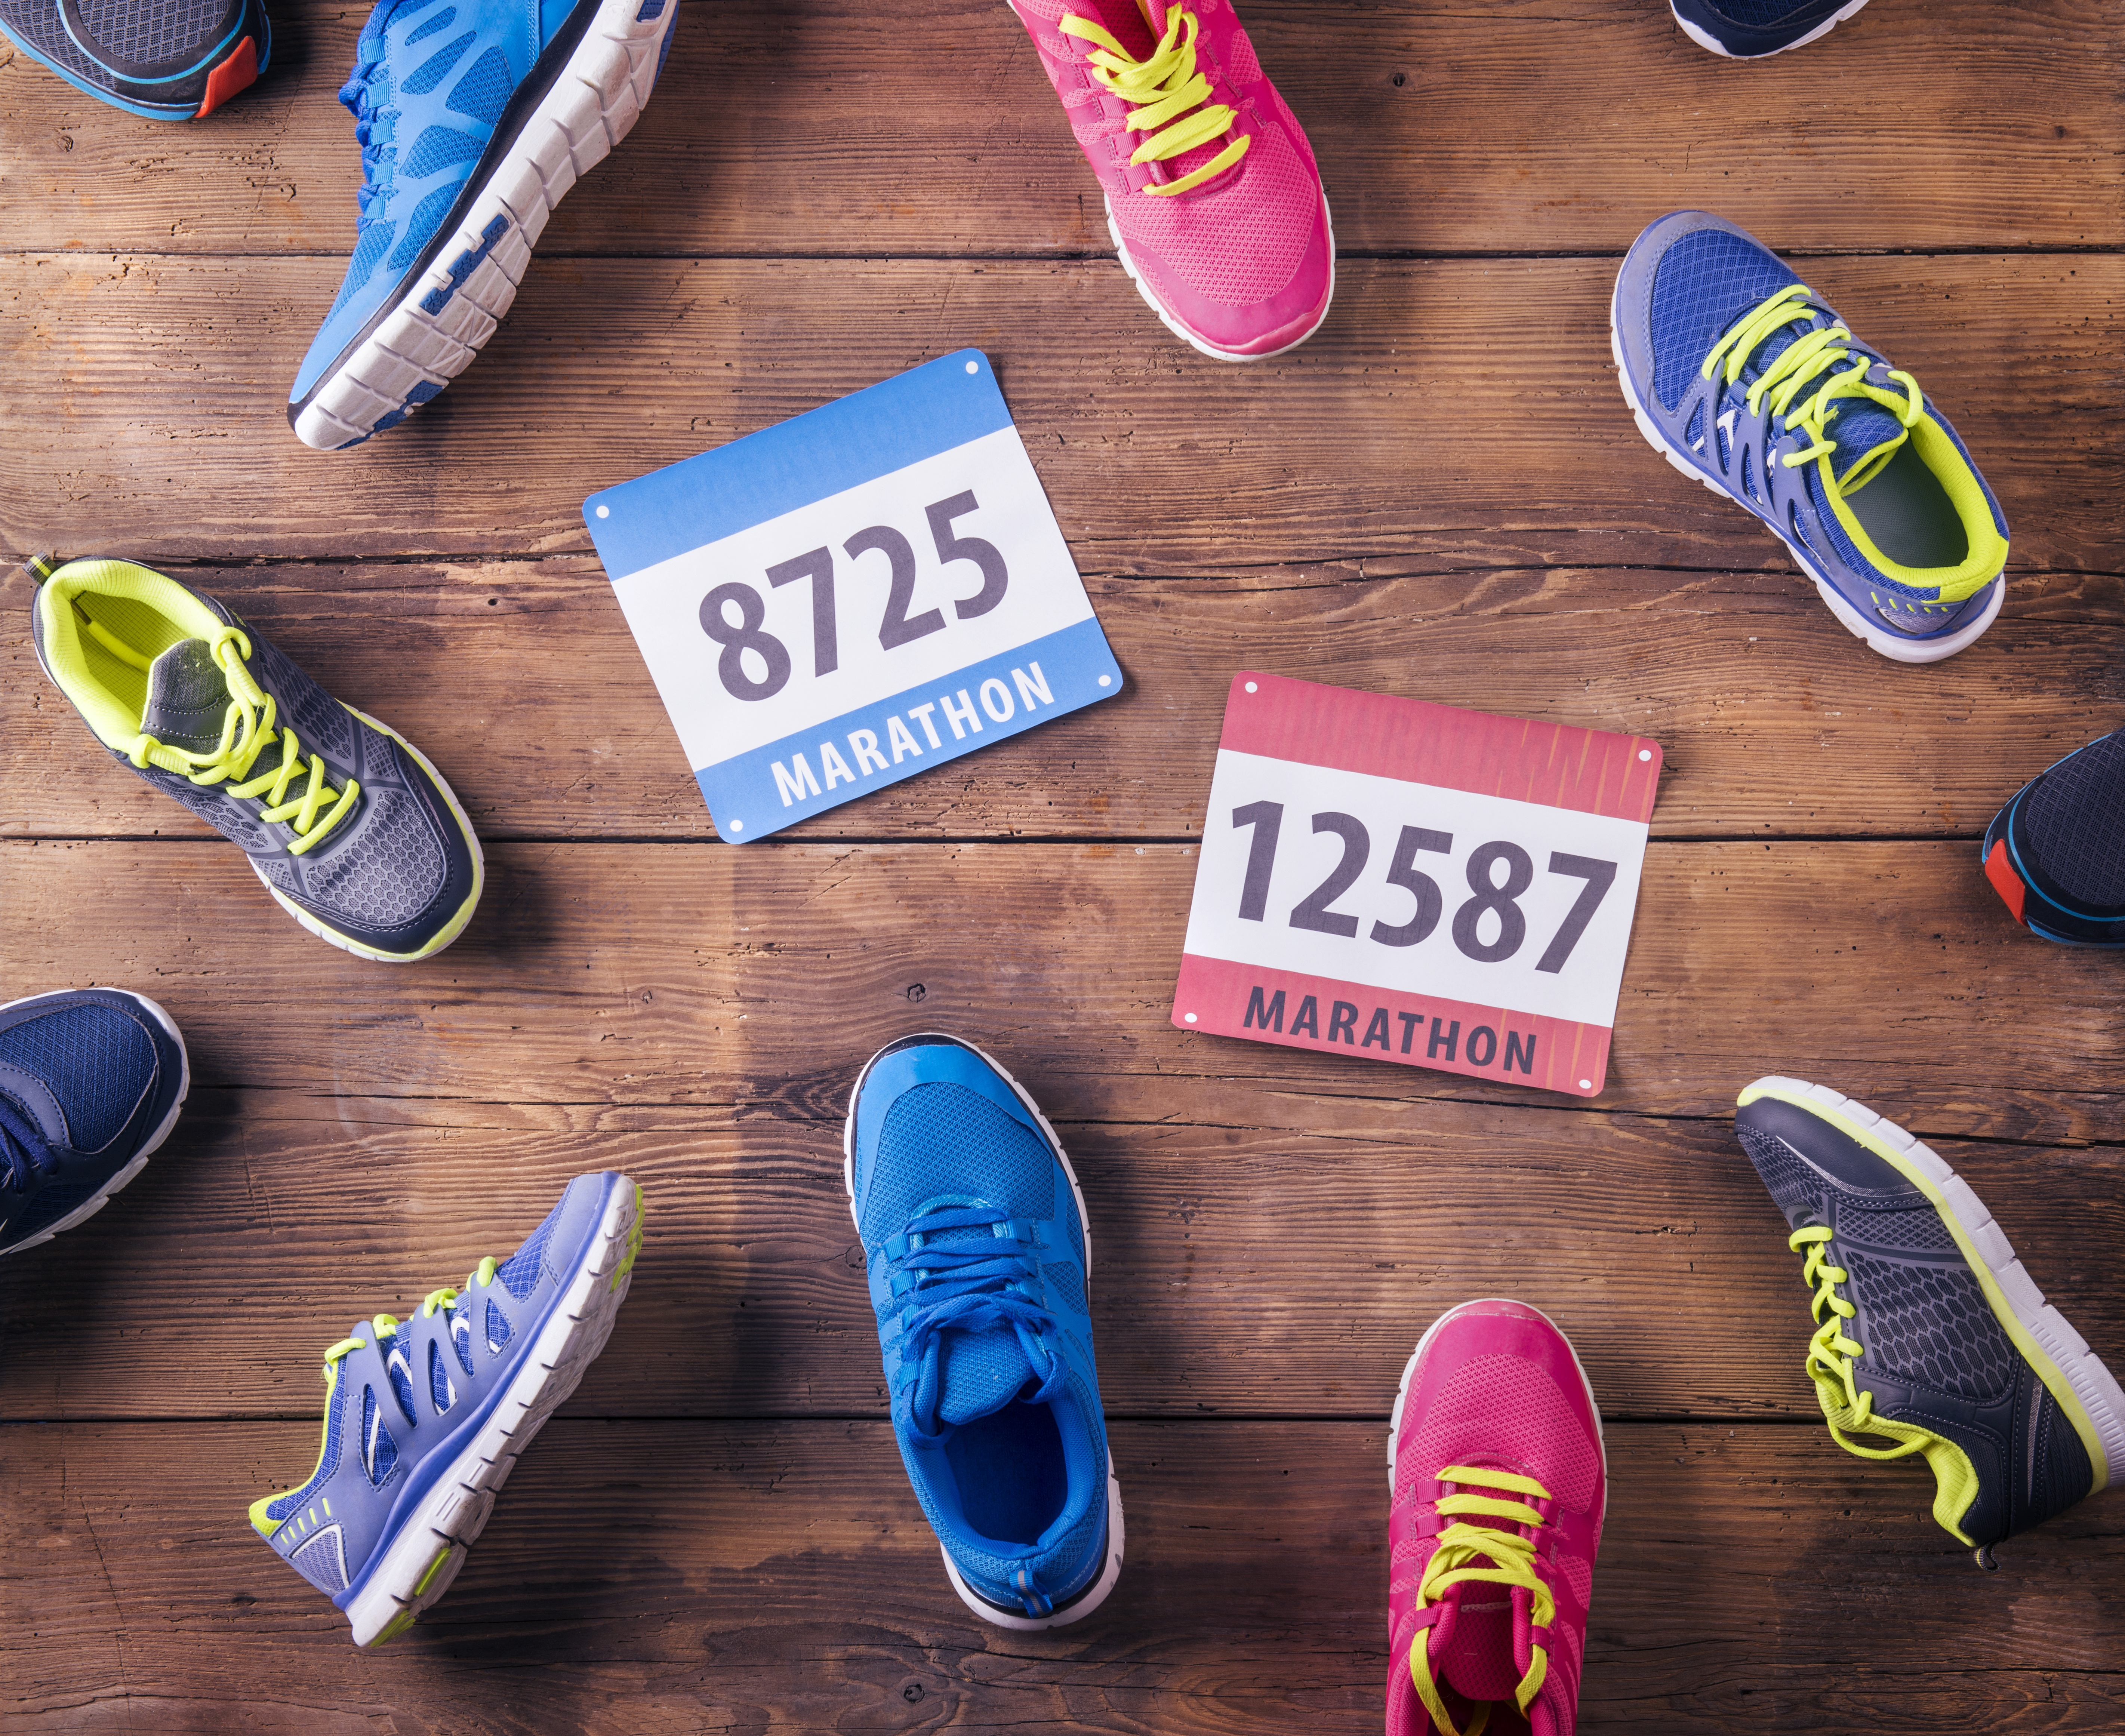 graphicstock-various-running-shoes-and-race-numbers-laid-on-a-wooden-floor-background_SRxlqc_aZZ.jpg